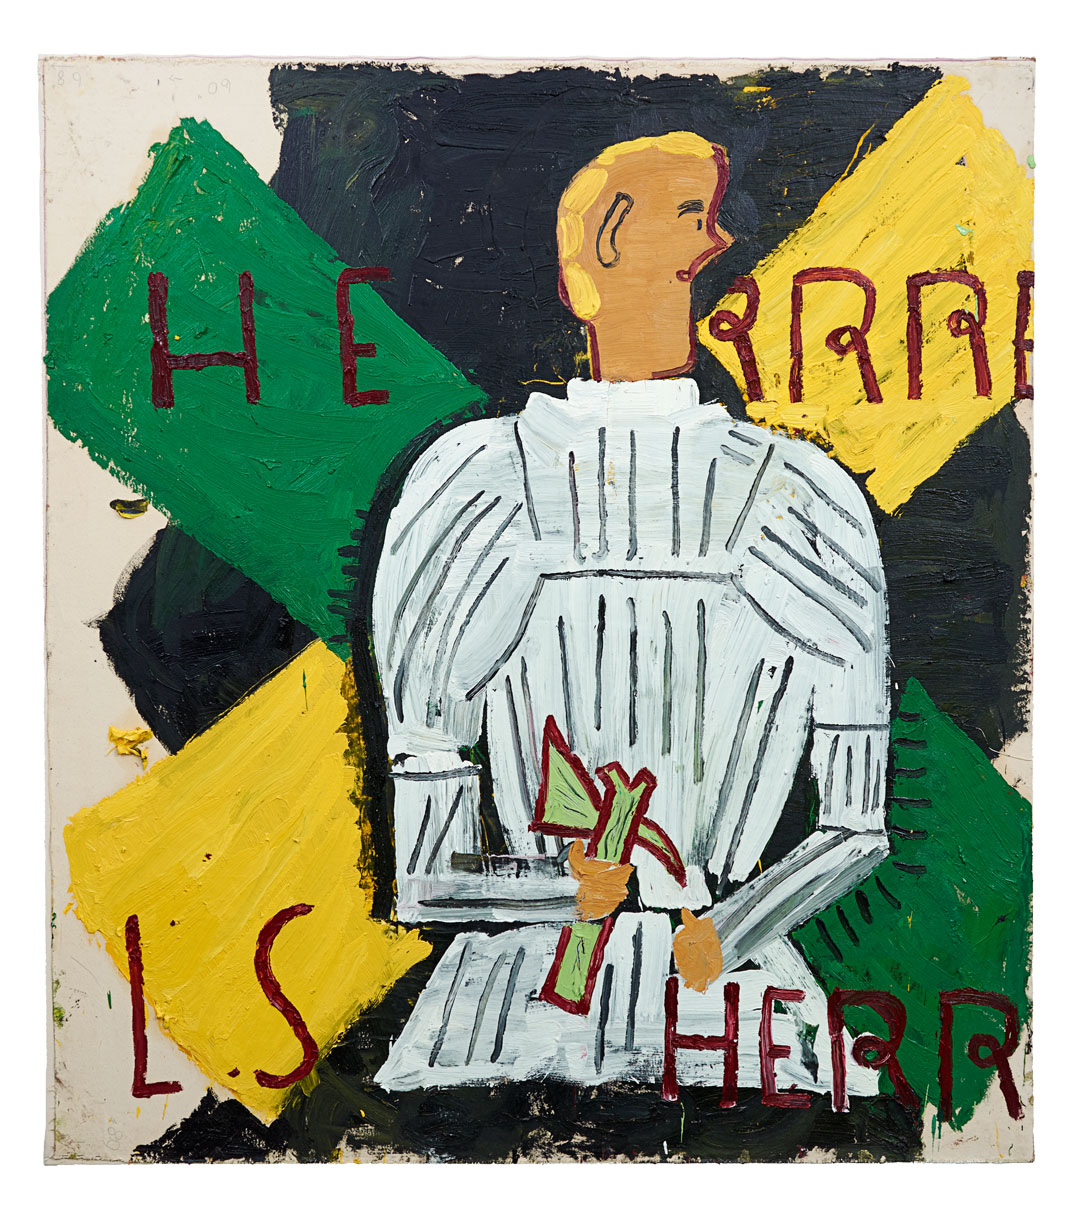 Herr Rehlinger in White Armour (2014) by Rose Wylie. As reproduced in Vitamin P3